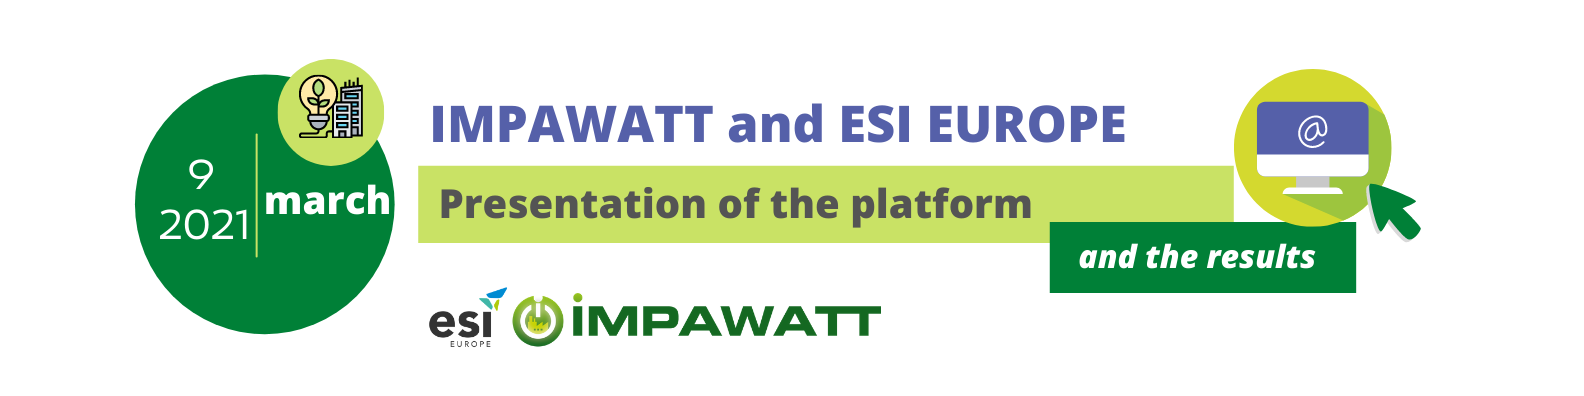 Impawatt and ESI Europe-Presentation of the platform and results